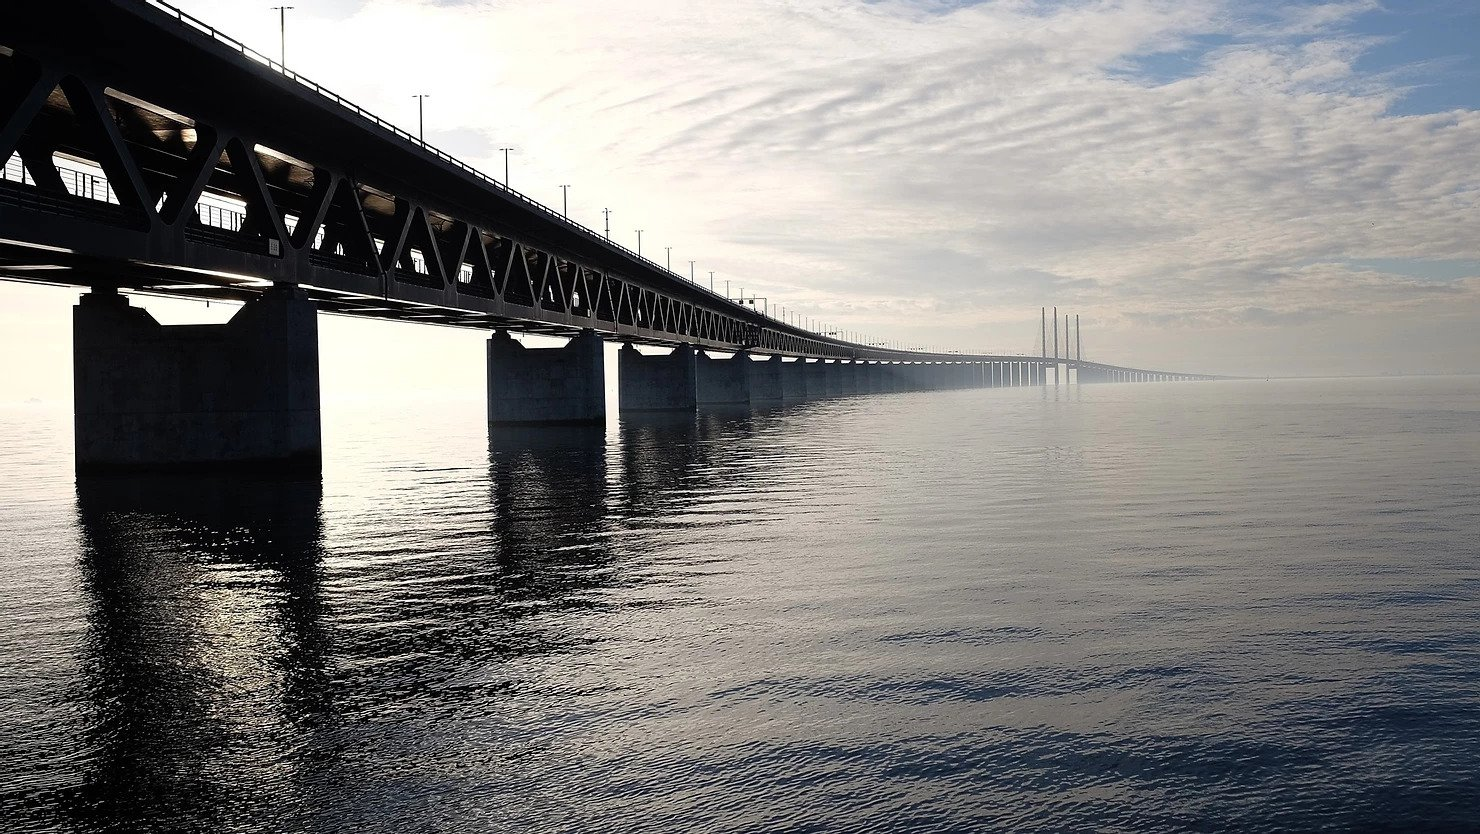 From Band-Aids to Bridges: Developing a Long Term Covid-19 Discipleship Plan